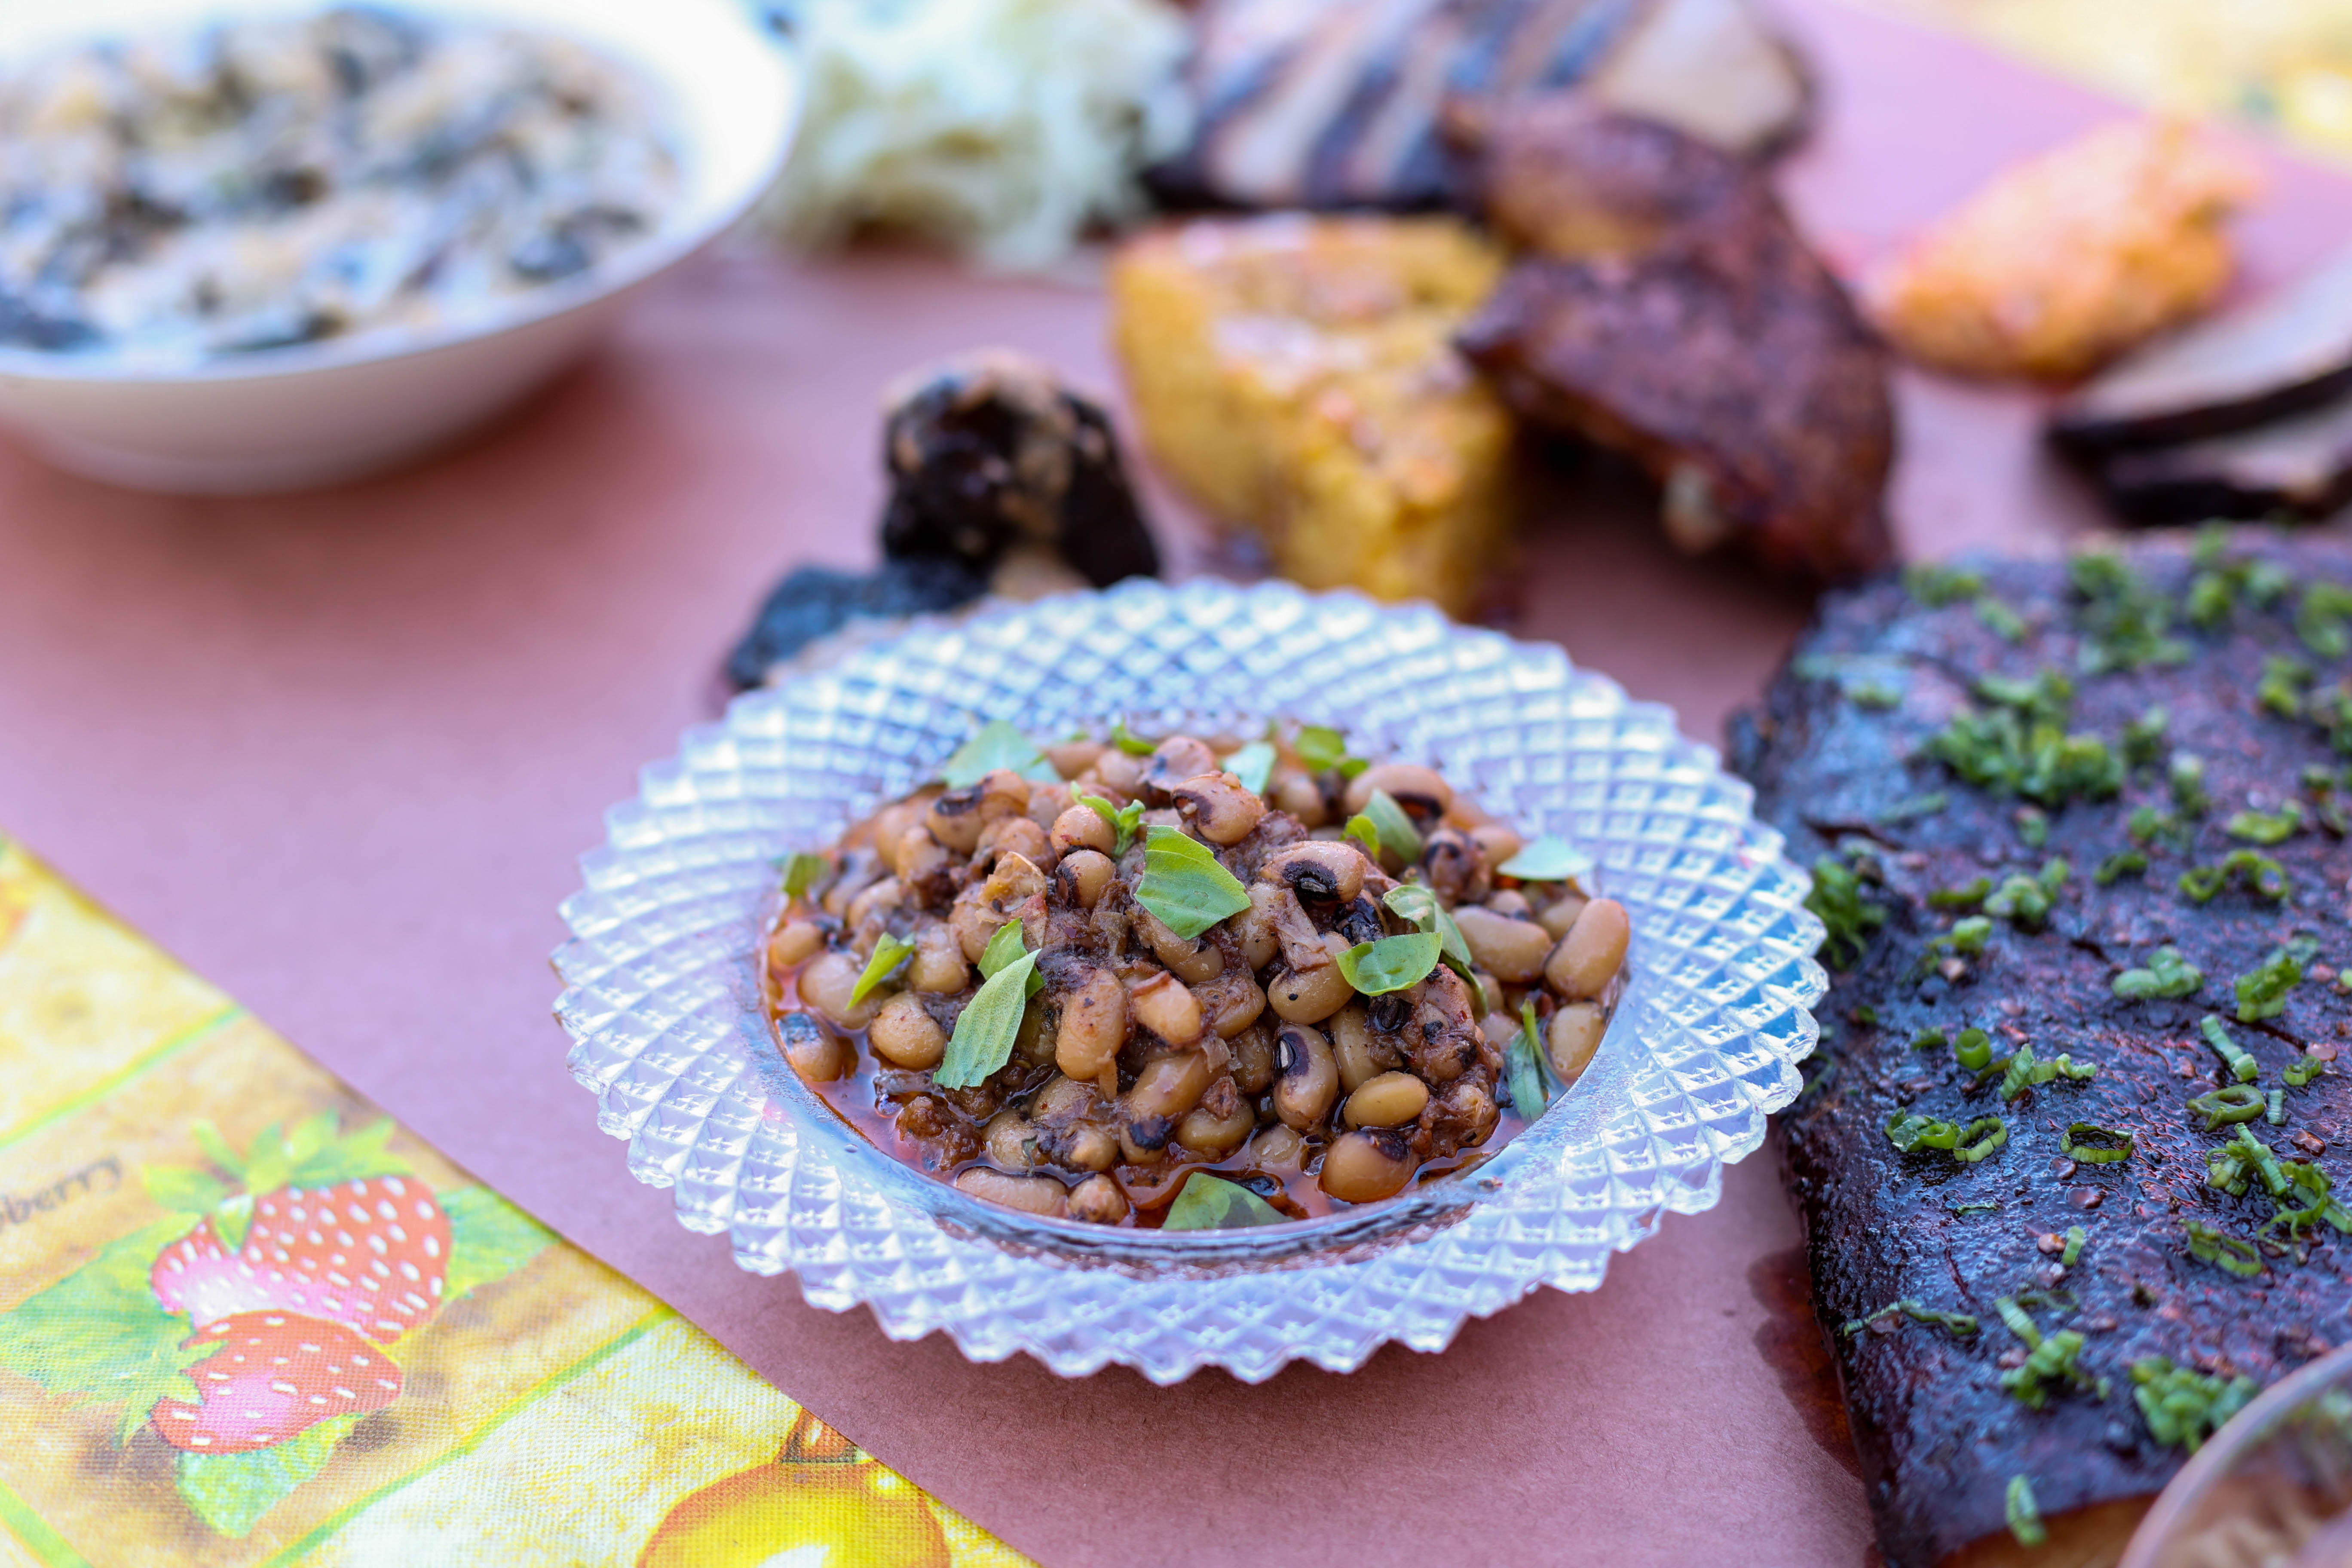 A bowl of black-eyed peas on a table